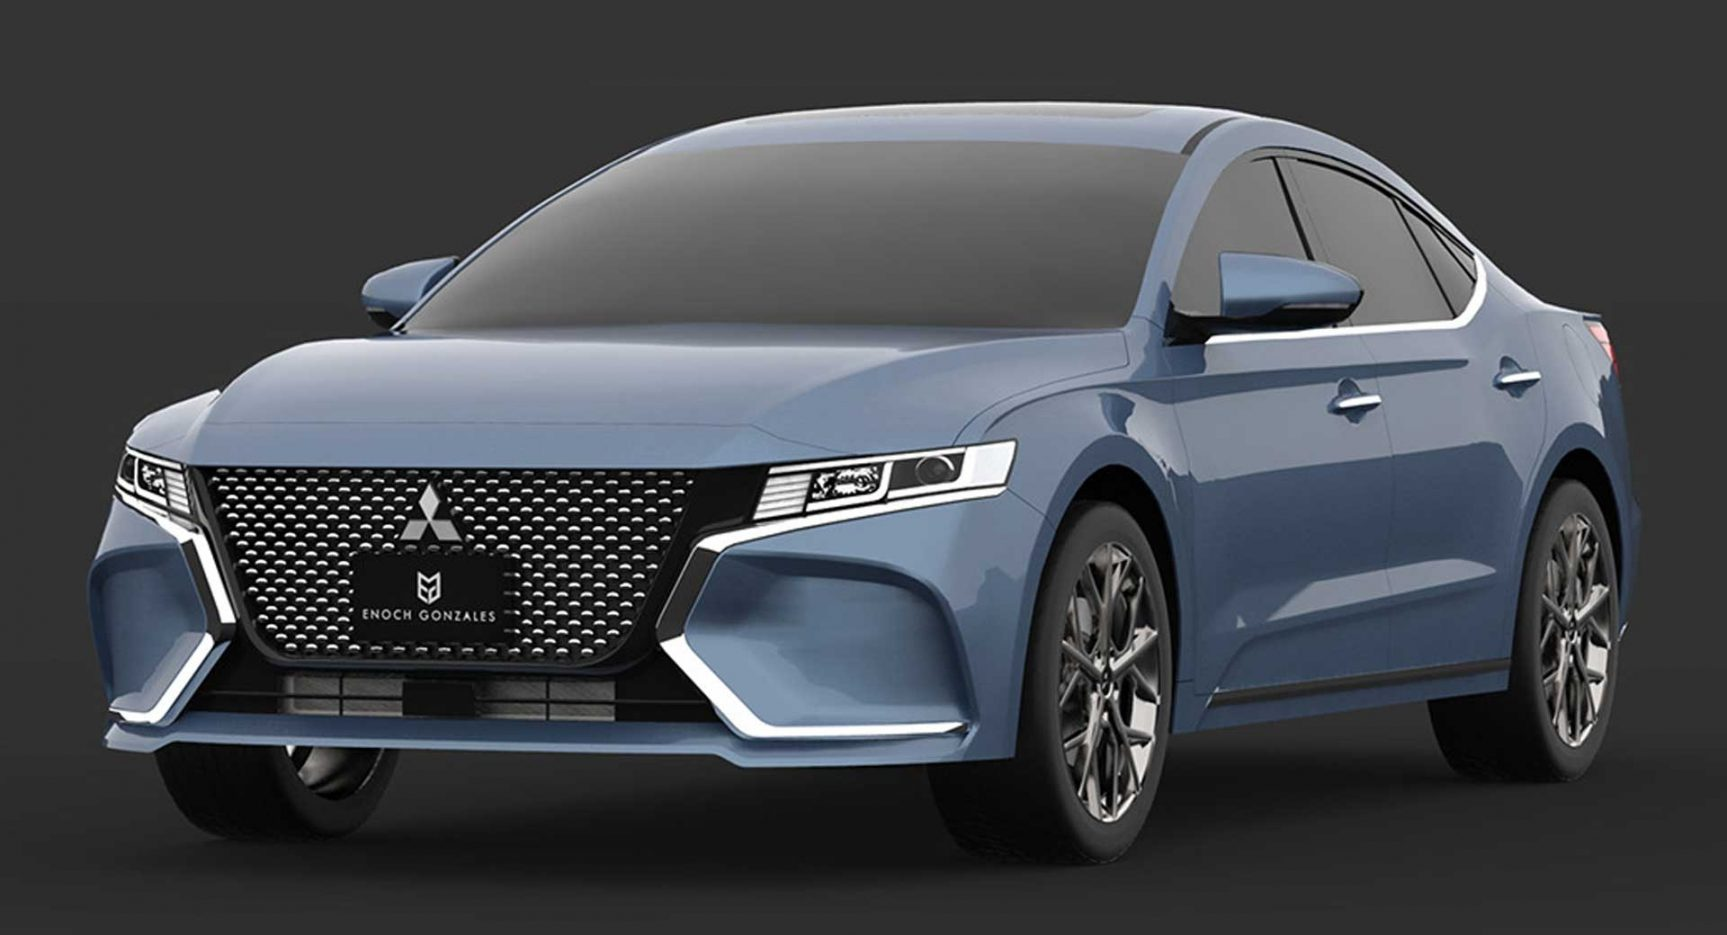 84 Great Mitsubishi Lancer 2020 Price New Review by Mitsubishi Lancer 2020 Price